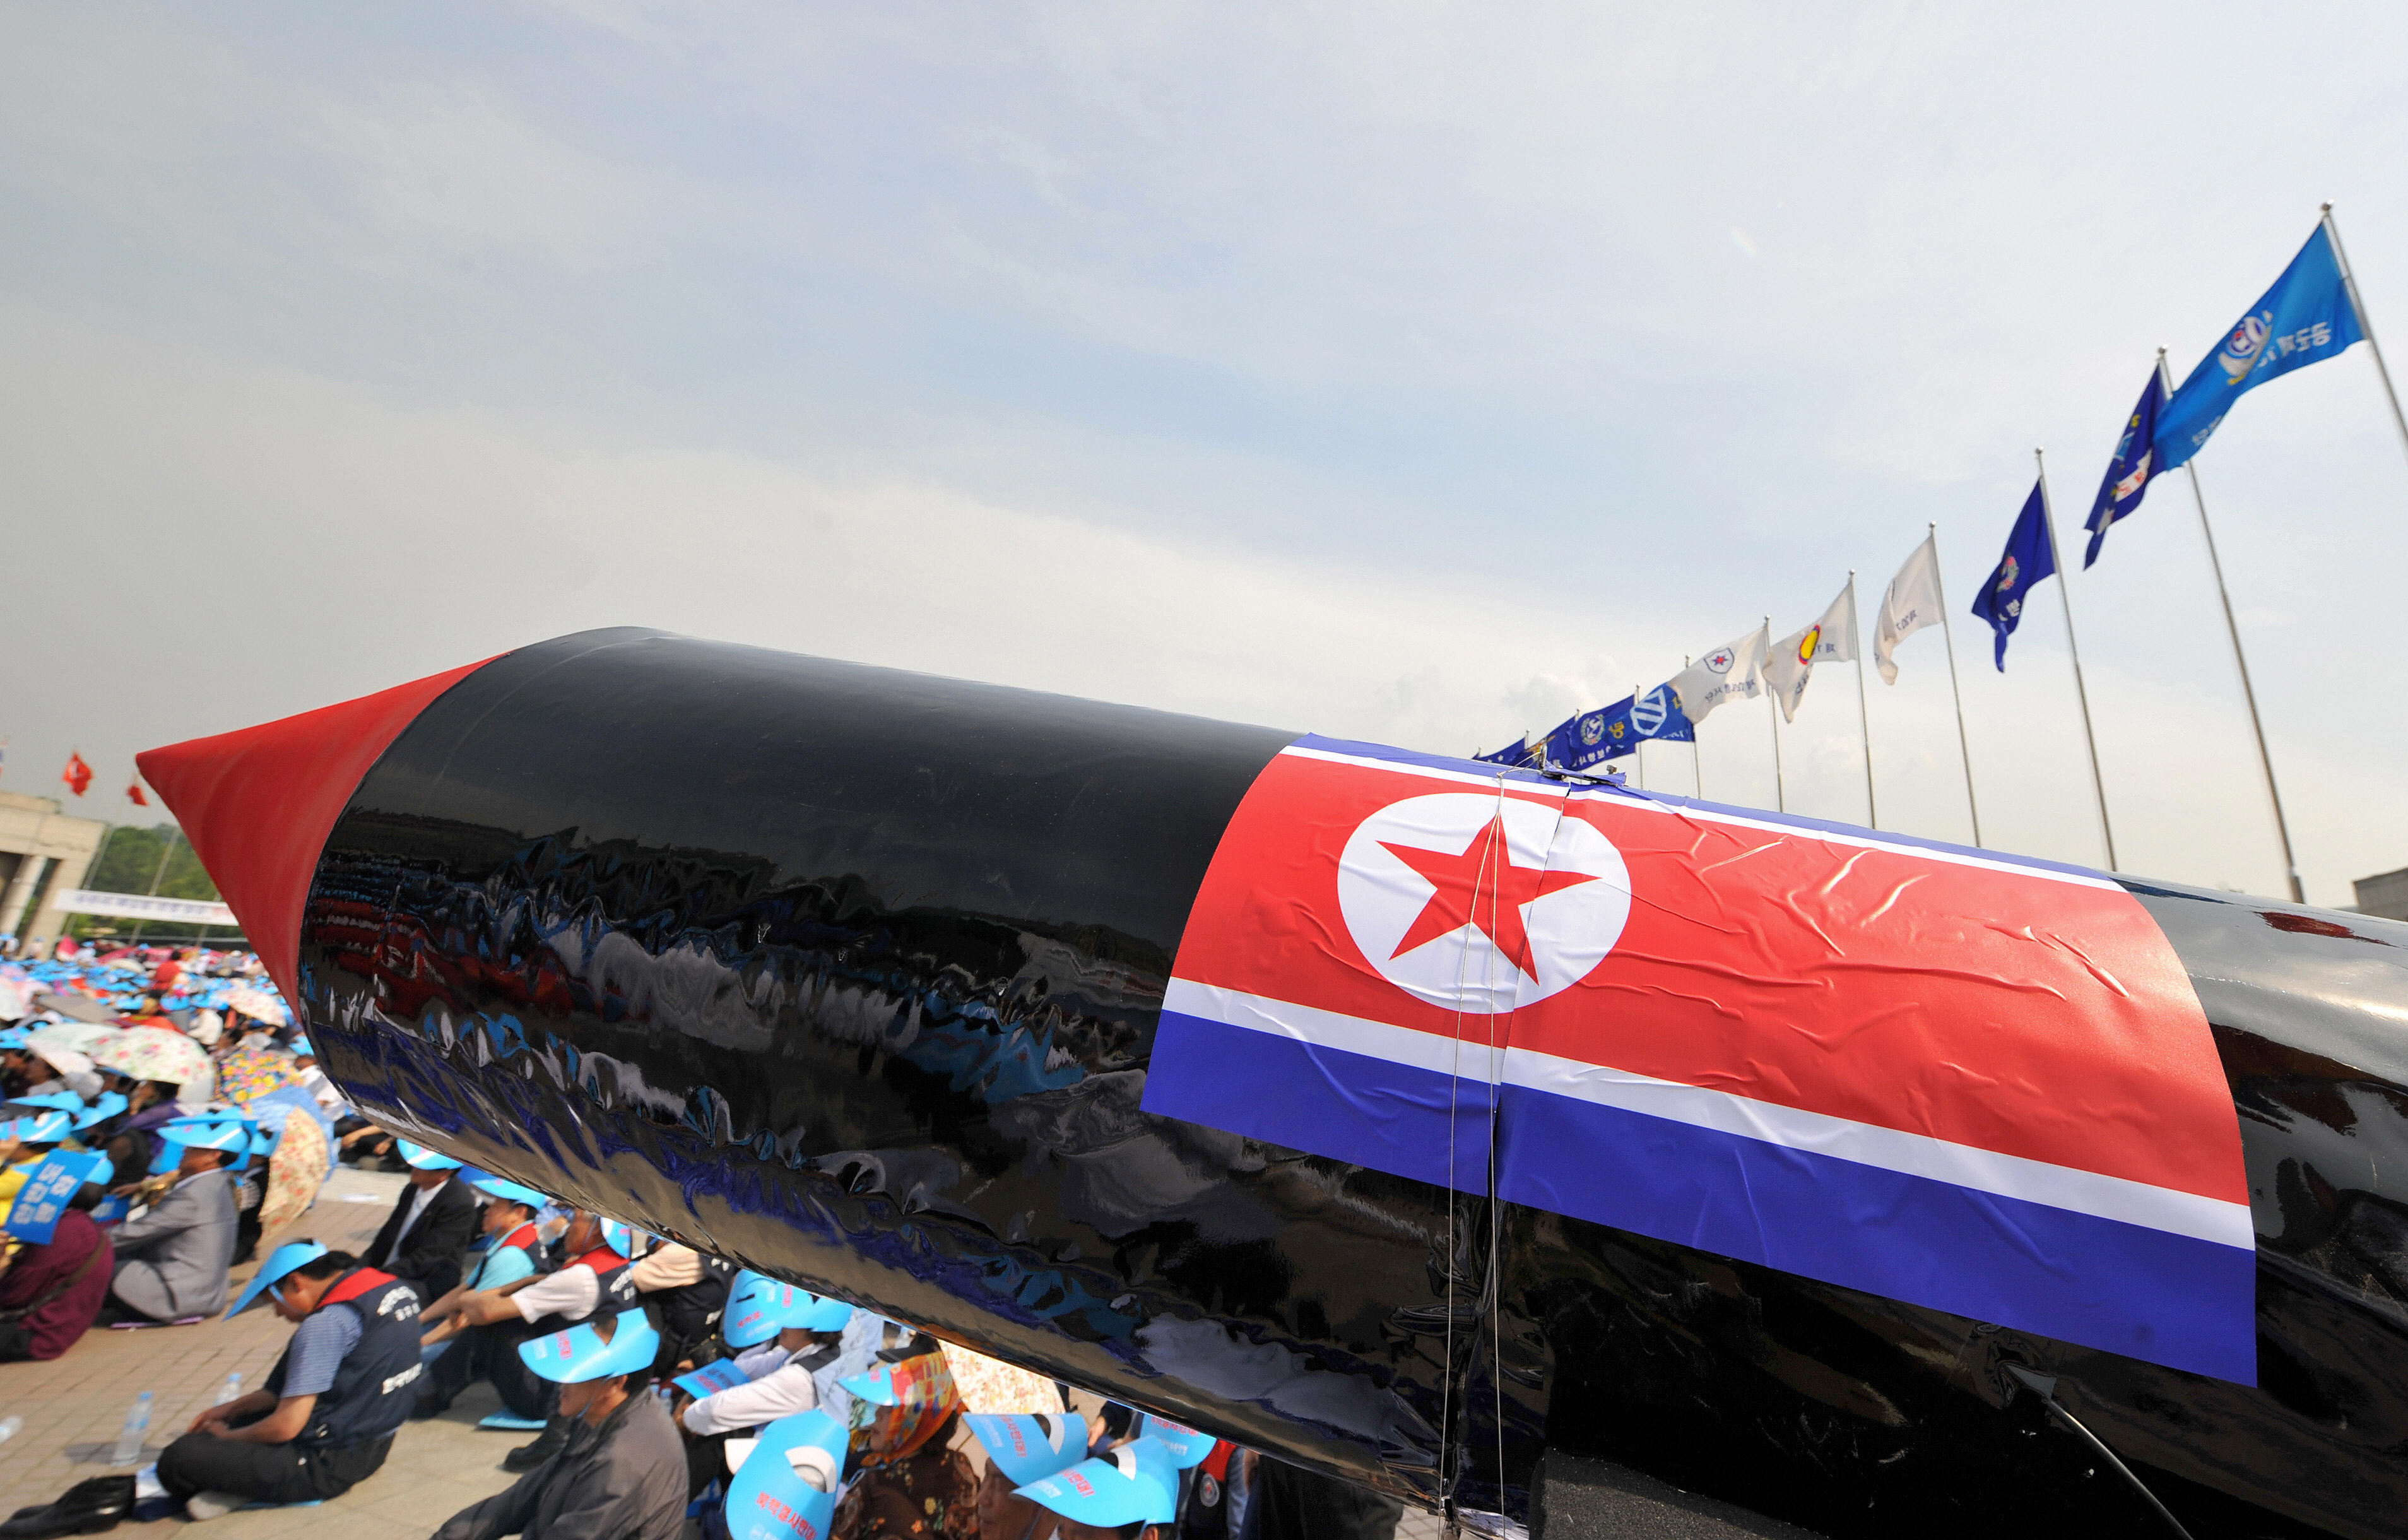 A mock North Korean missile is pictured during a rally denouncing North Korea's nuclear test and its recent missile launches, at the War Memorial of Korea in Seoul on June 4, 2009.